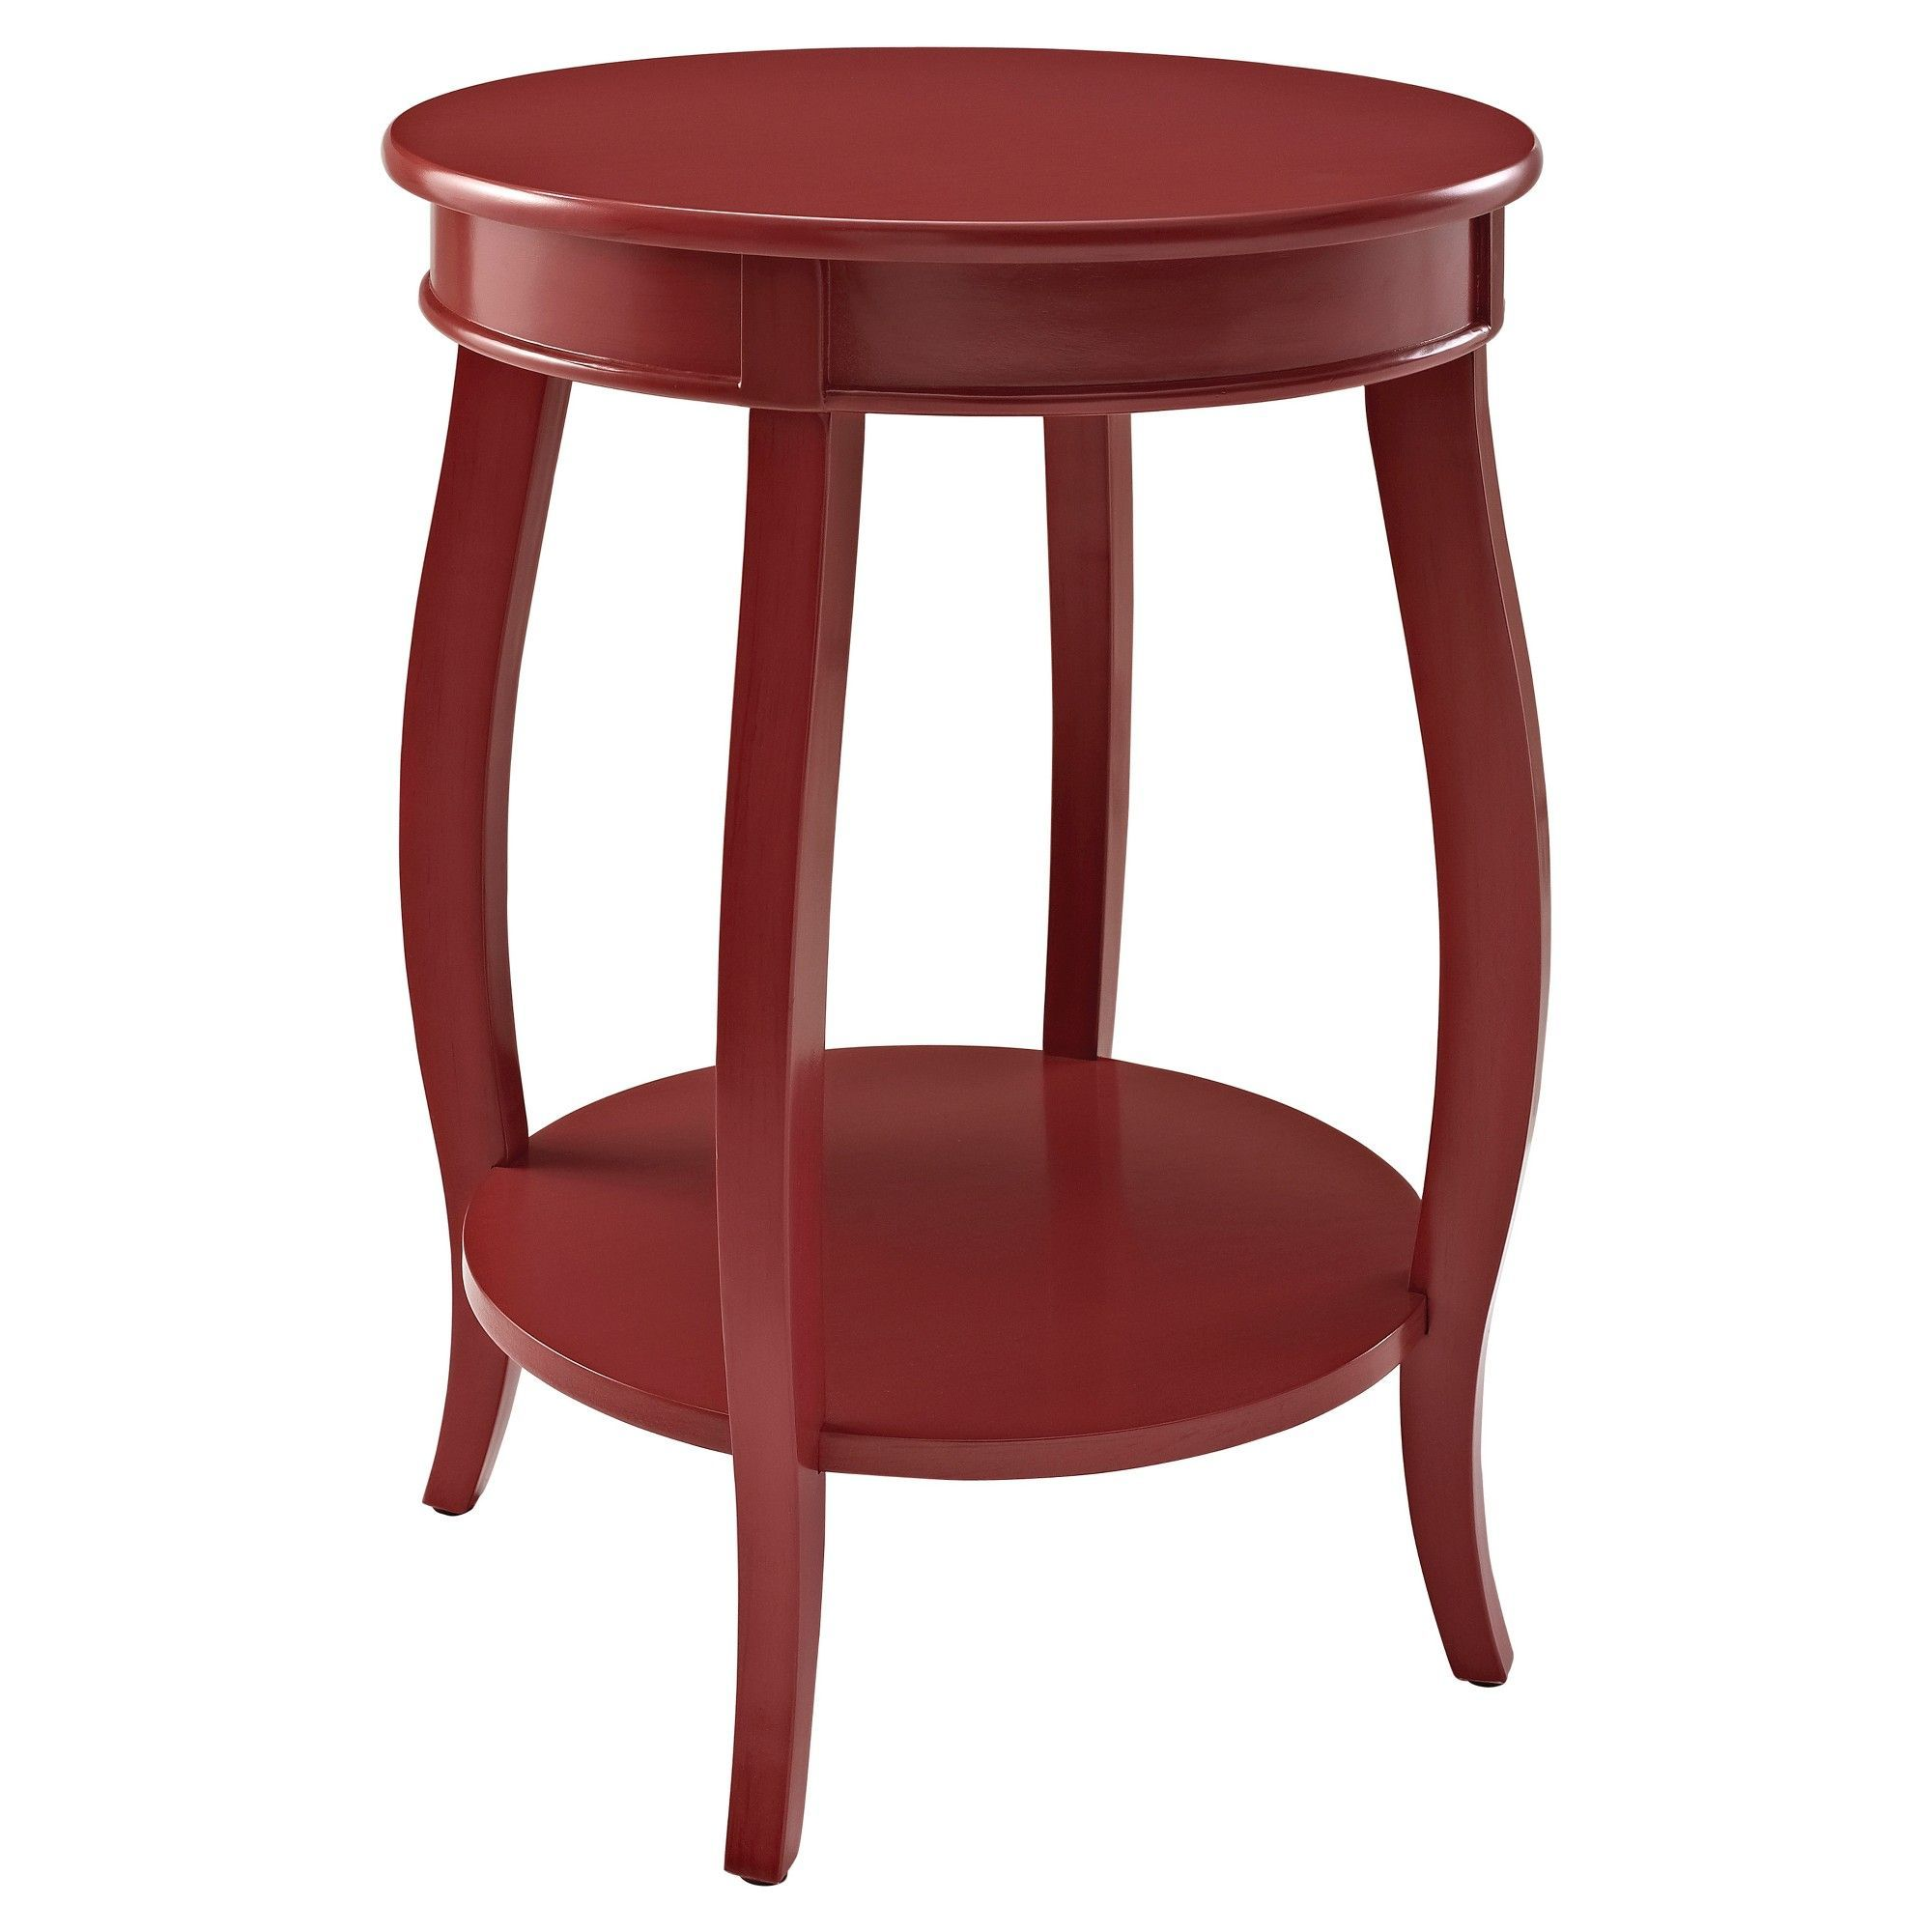 lindsay round table with shelf red oak grove collection accent purple side iron coffee legs drinks cooler small trestle jcpenney tablecloths inch end glass top tables egg chair